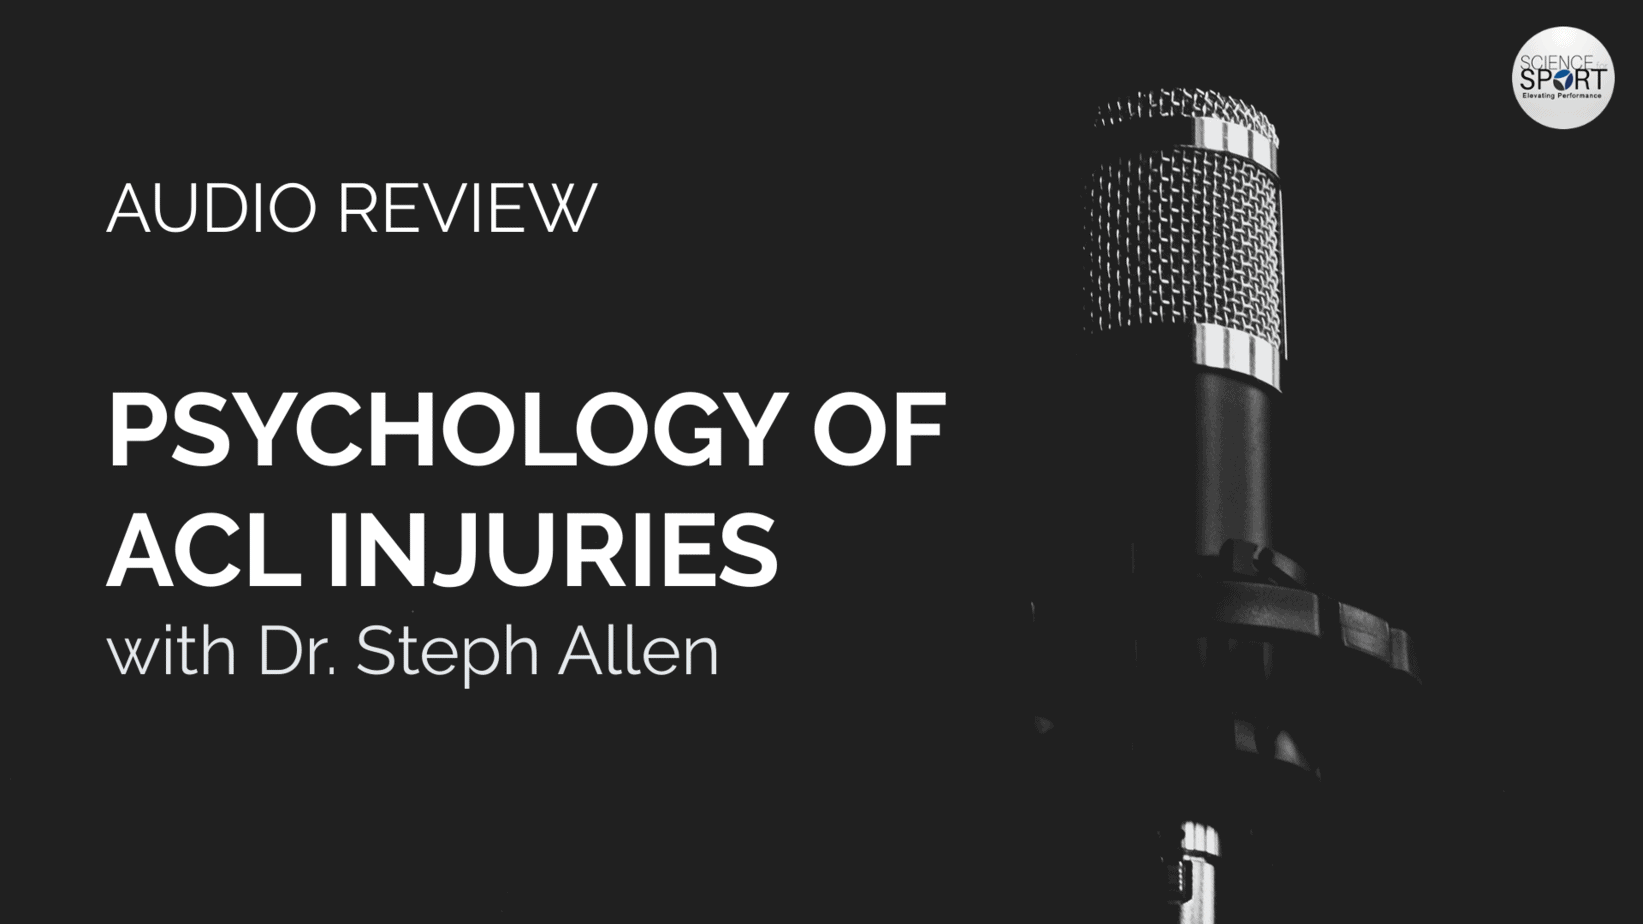 Psychology of ACL Injuries with Dr. Steph Allen - Science for Sport